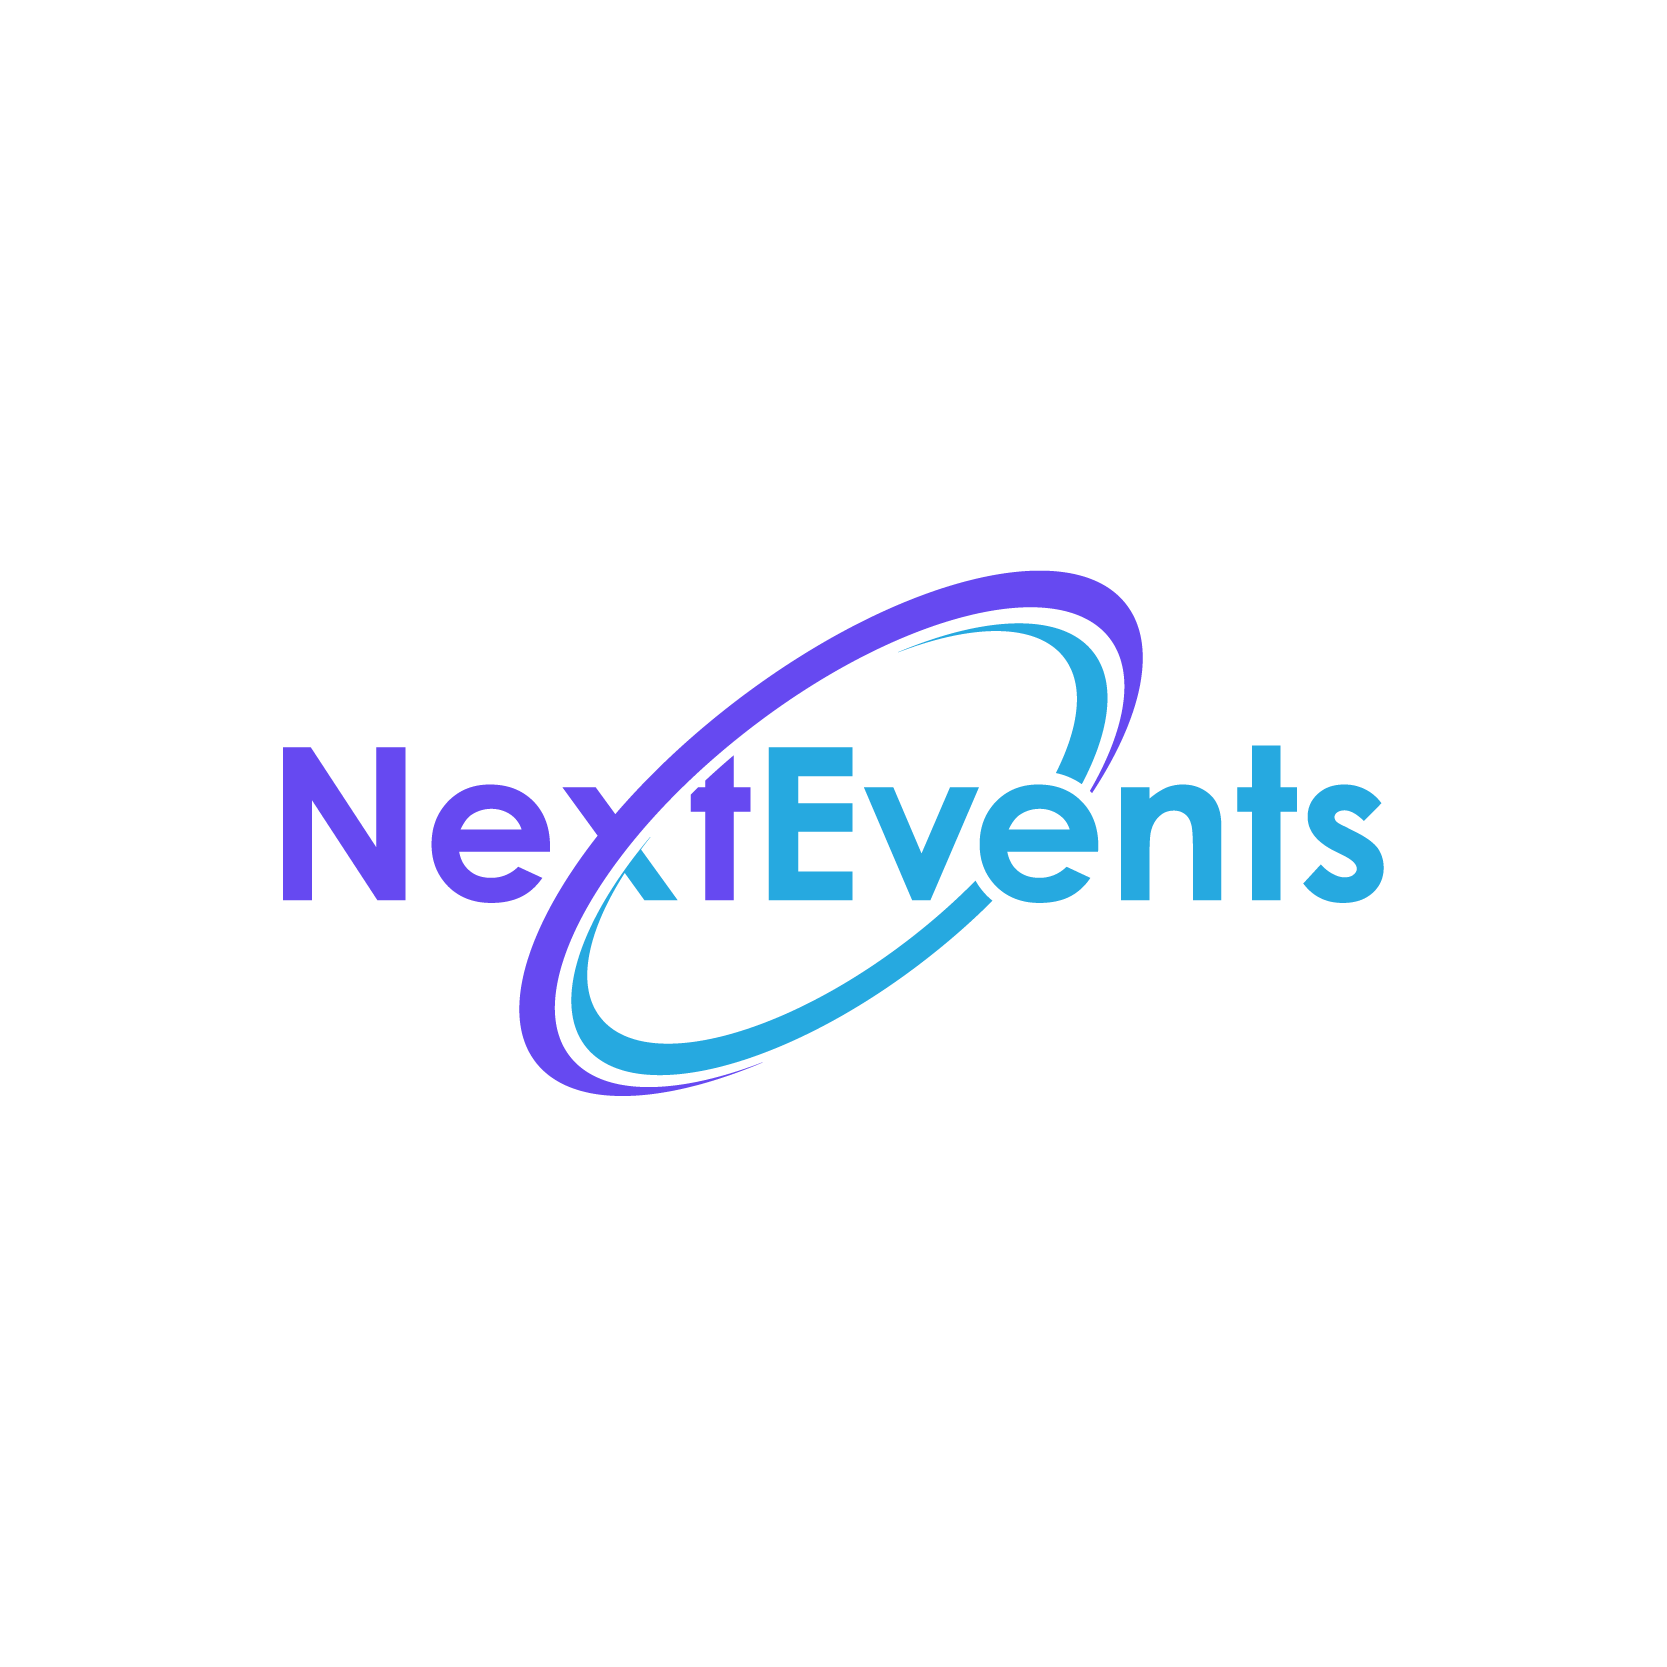 Event and party rental company looking for new, modern logo